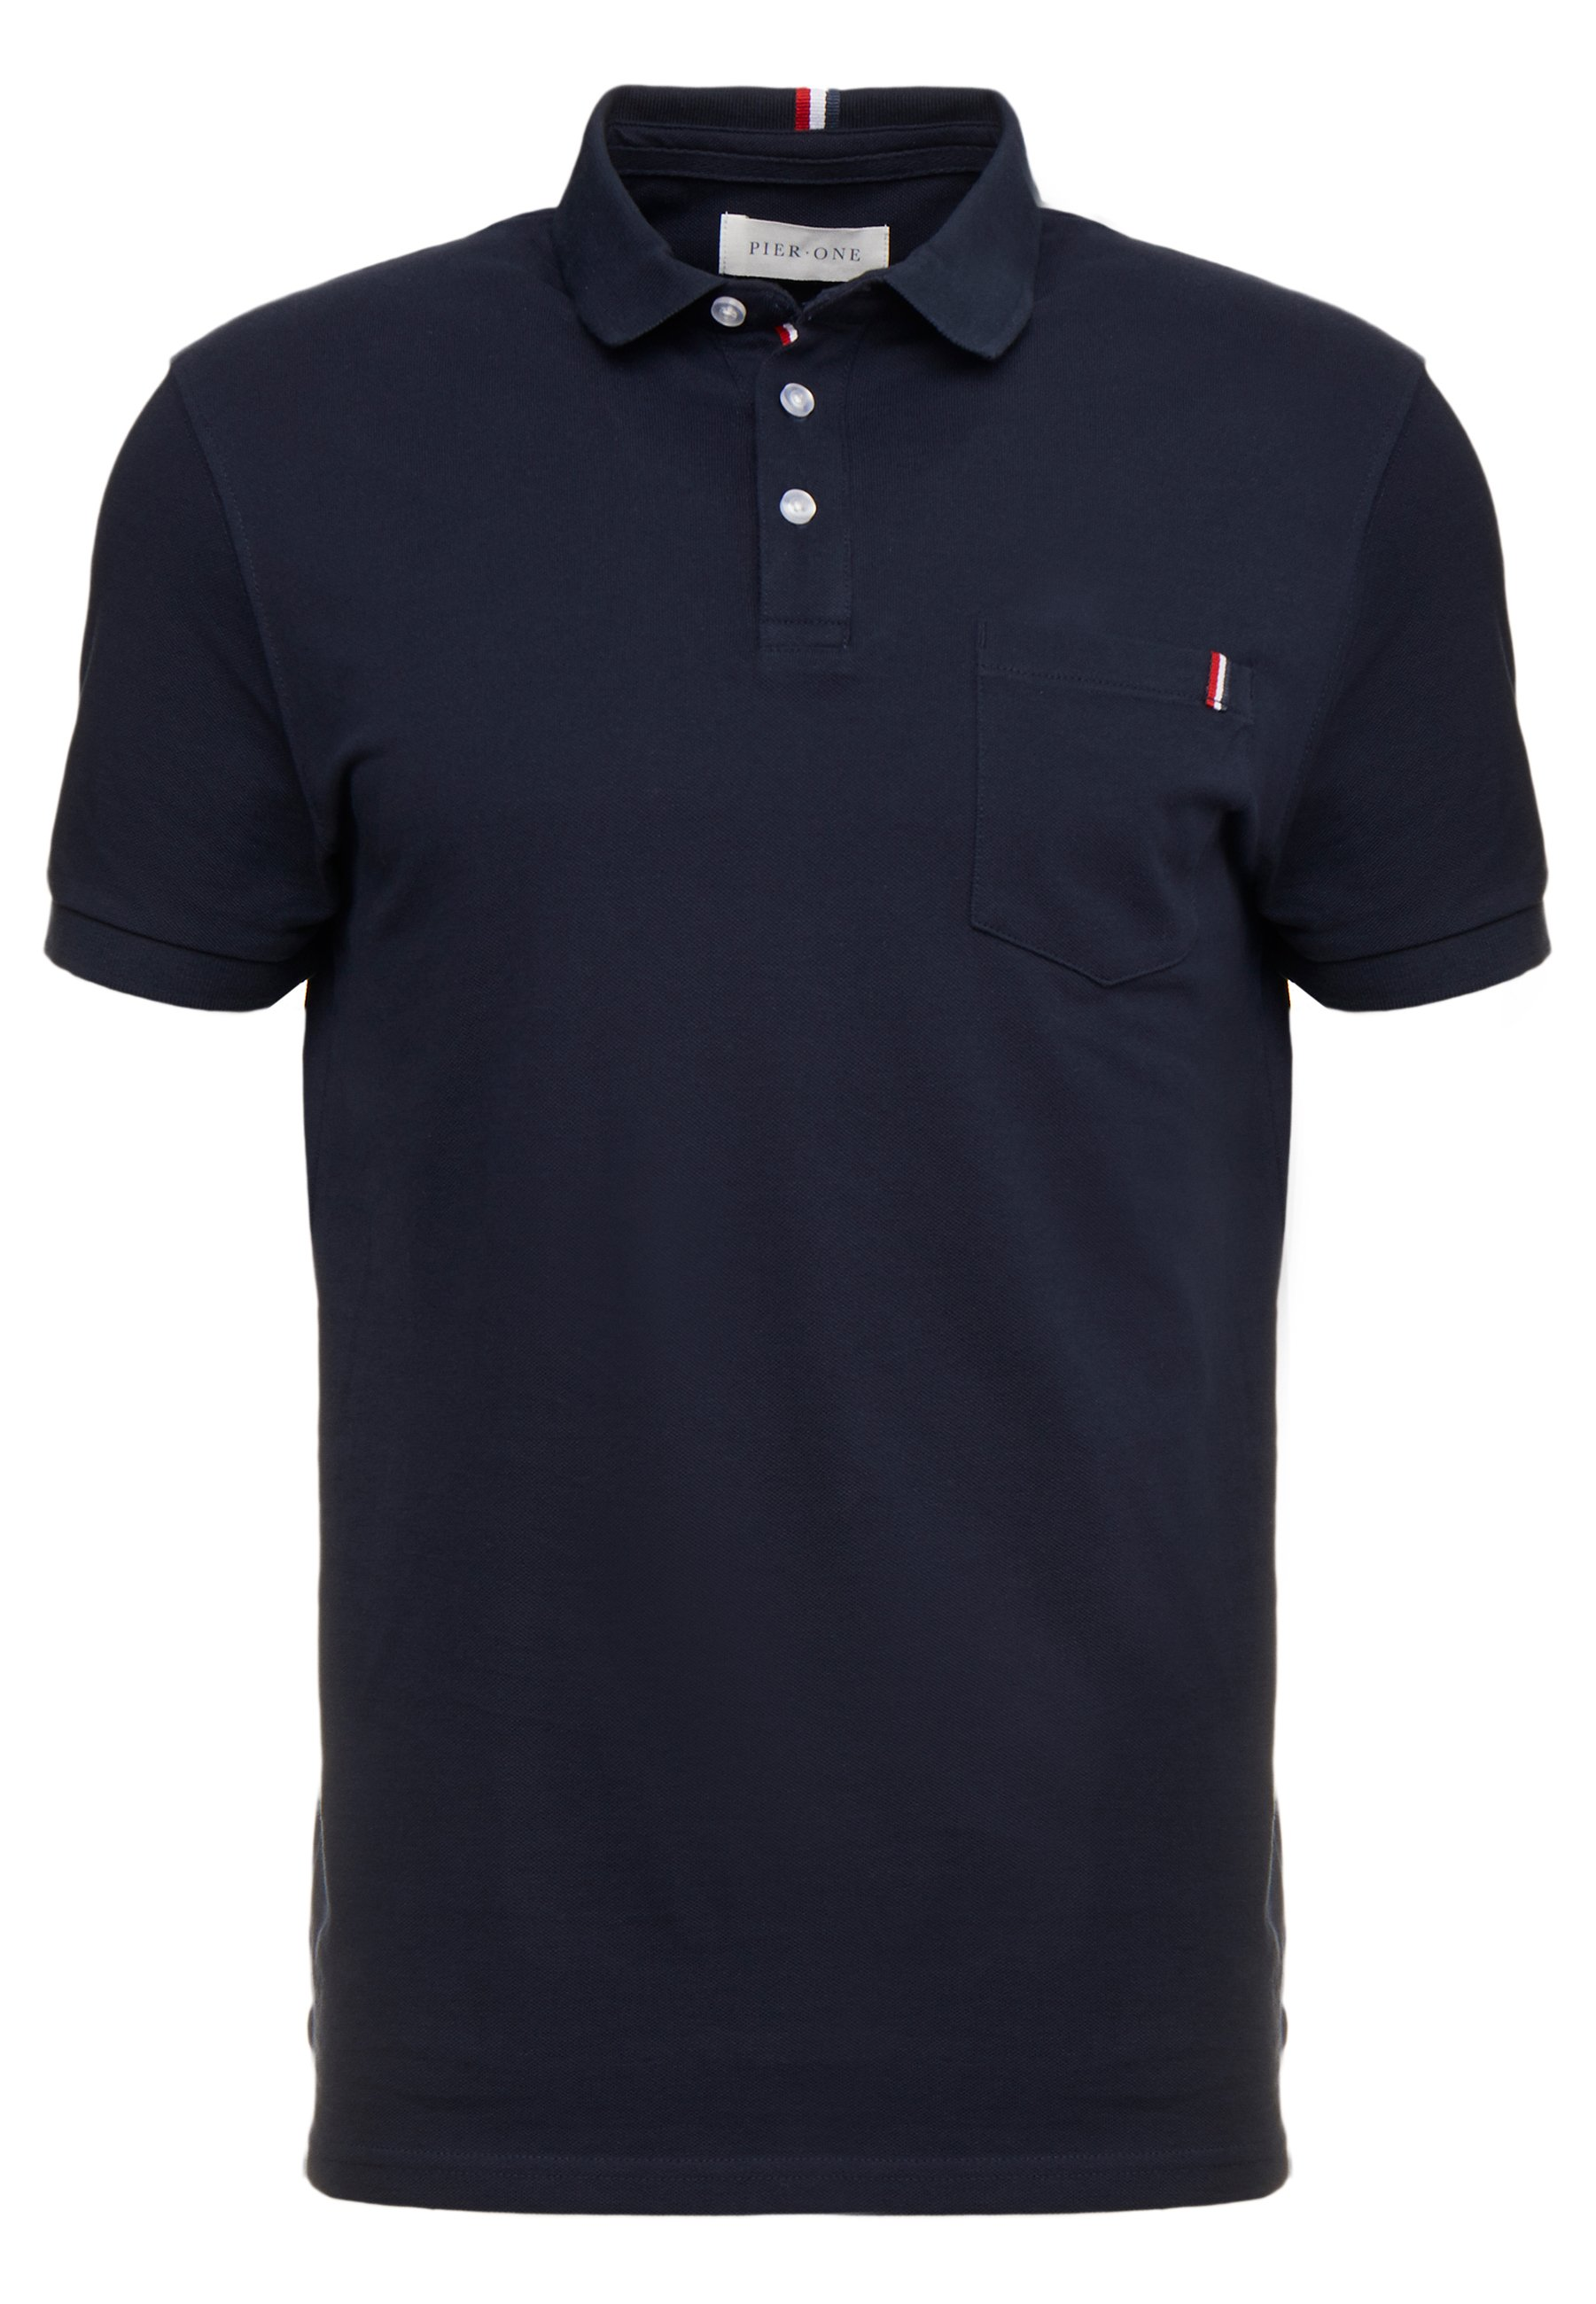 Pier One Polo - Dark Blue